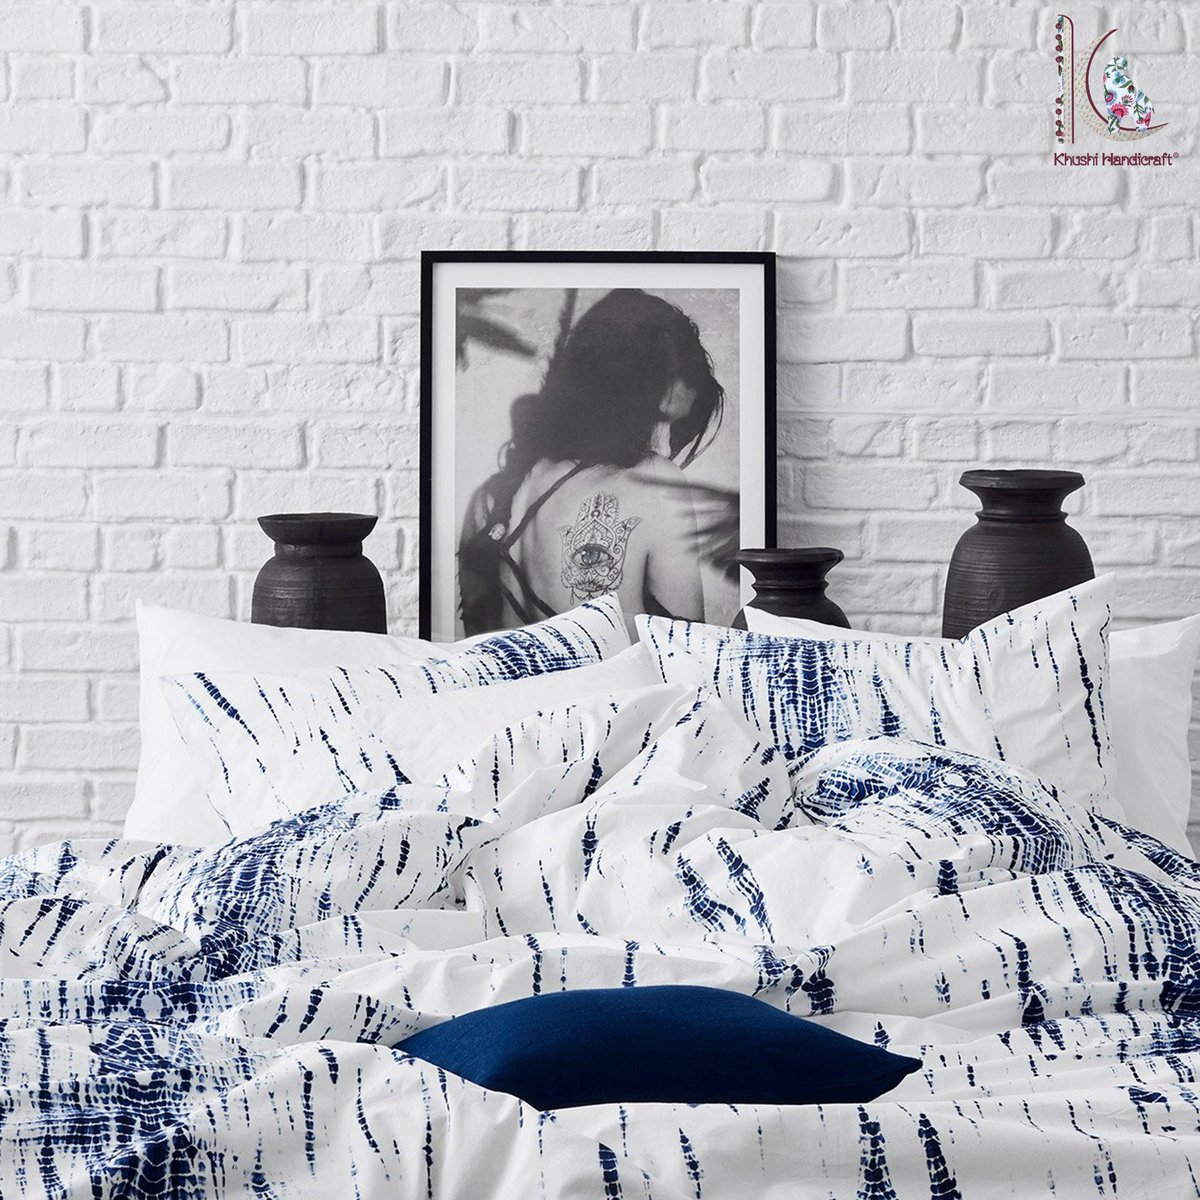 Excited to share the latest addition to my #etsy shop: Shibori Tie dye Boho Bedding, Bed separates duvet cover cushion cover soft mul-mul Tie Dye Indian Indigo Bedding Hippie Wedding Dorm CKQD#01  #white #housewarming #christmas #blue #tiedye #ad